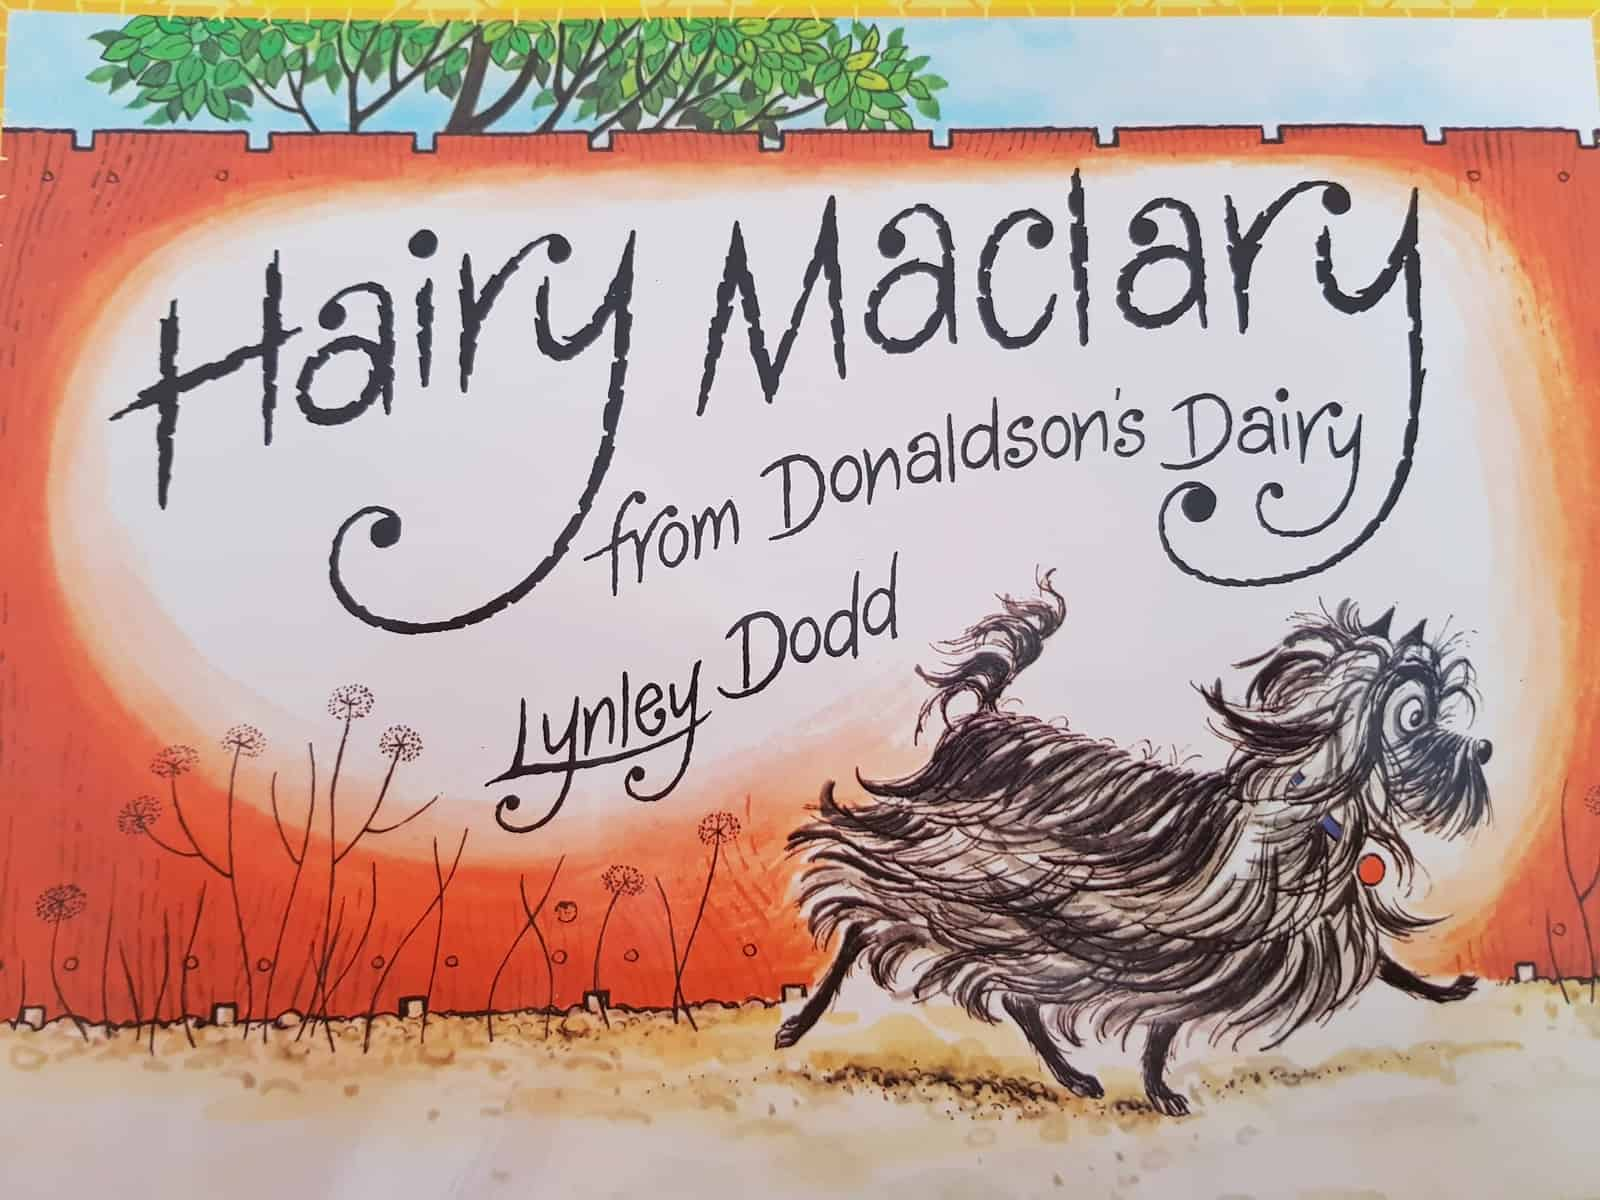 Book cover of Hairy Maclary book has scruffy dog on